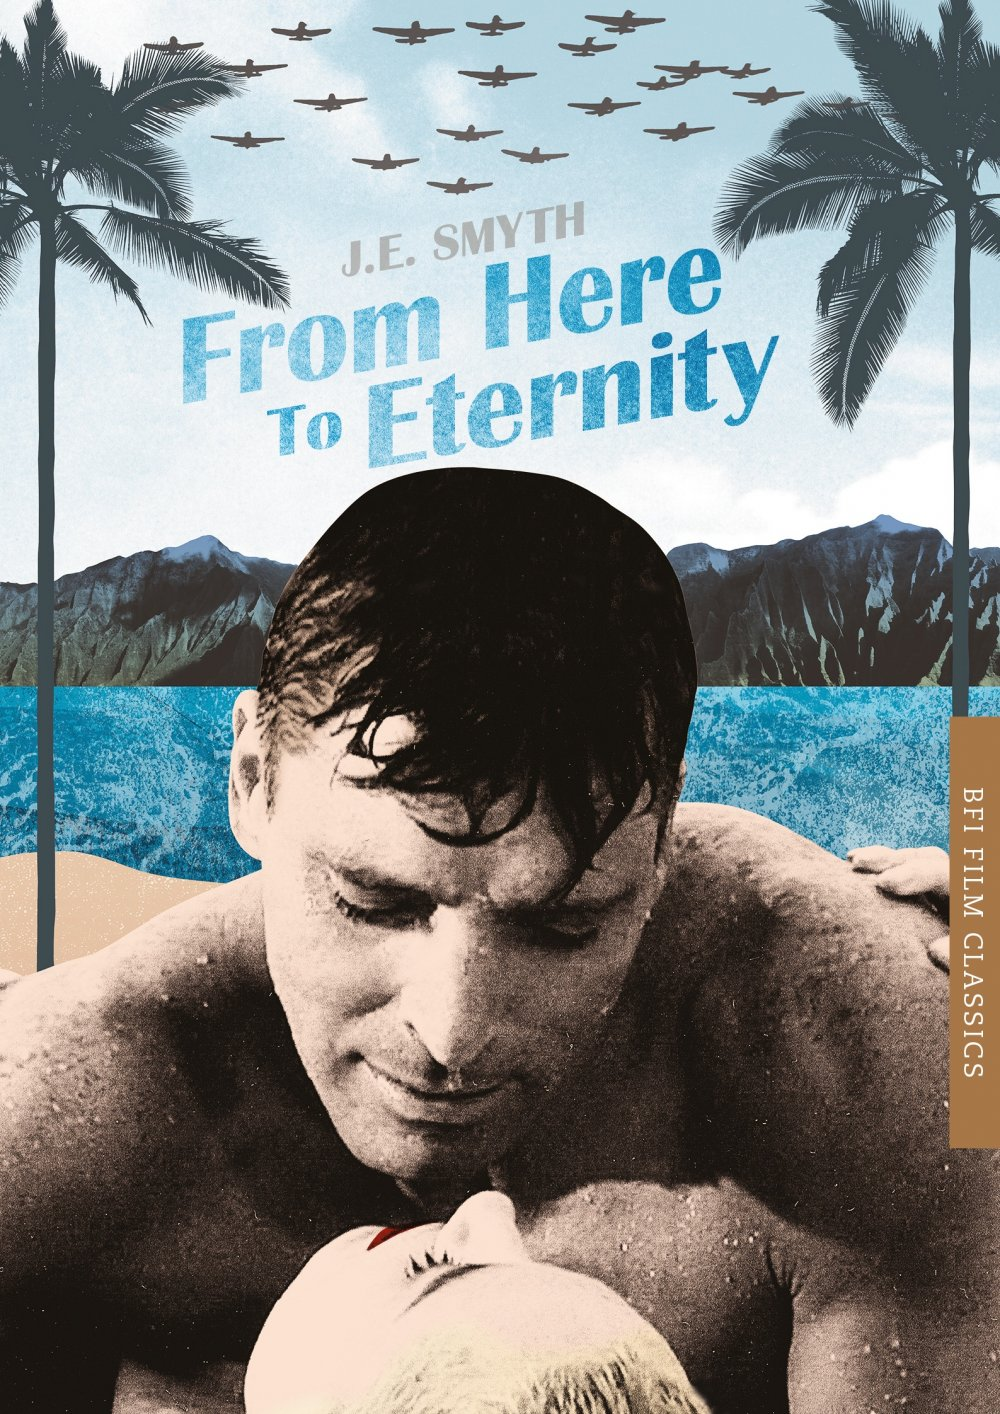 From Here to Eternity (BFI Film Classics) by J.E. Smyth